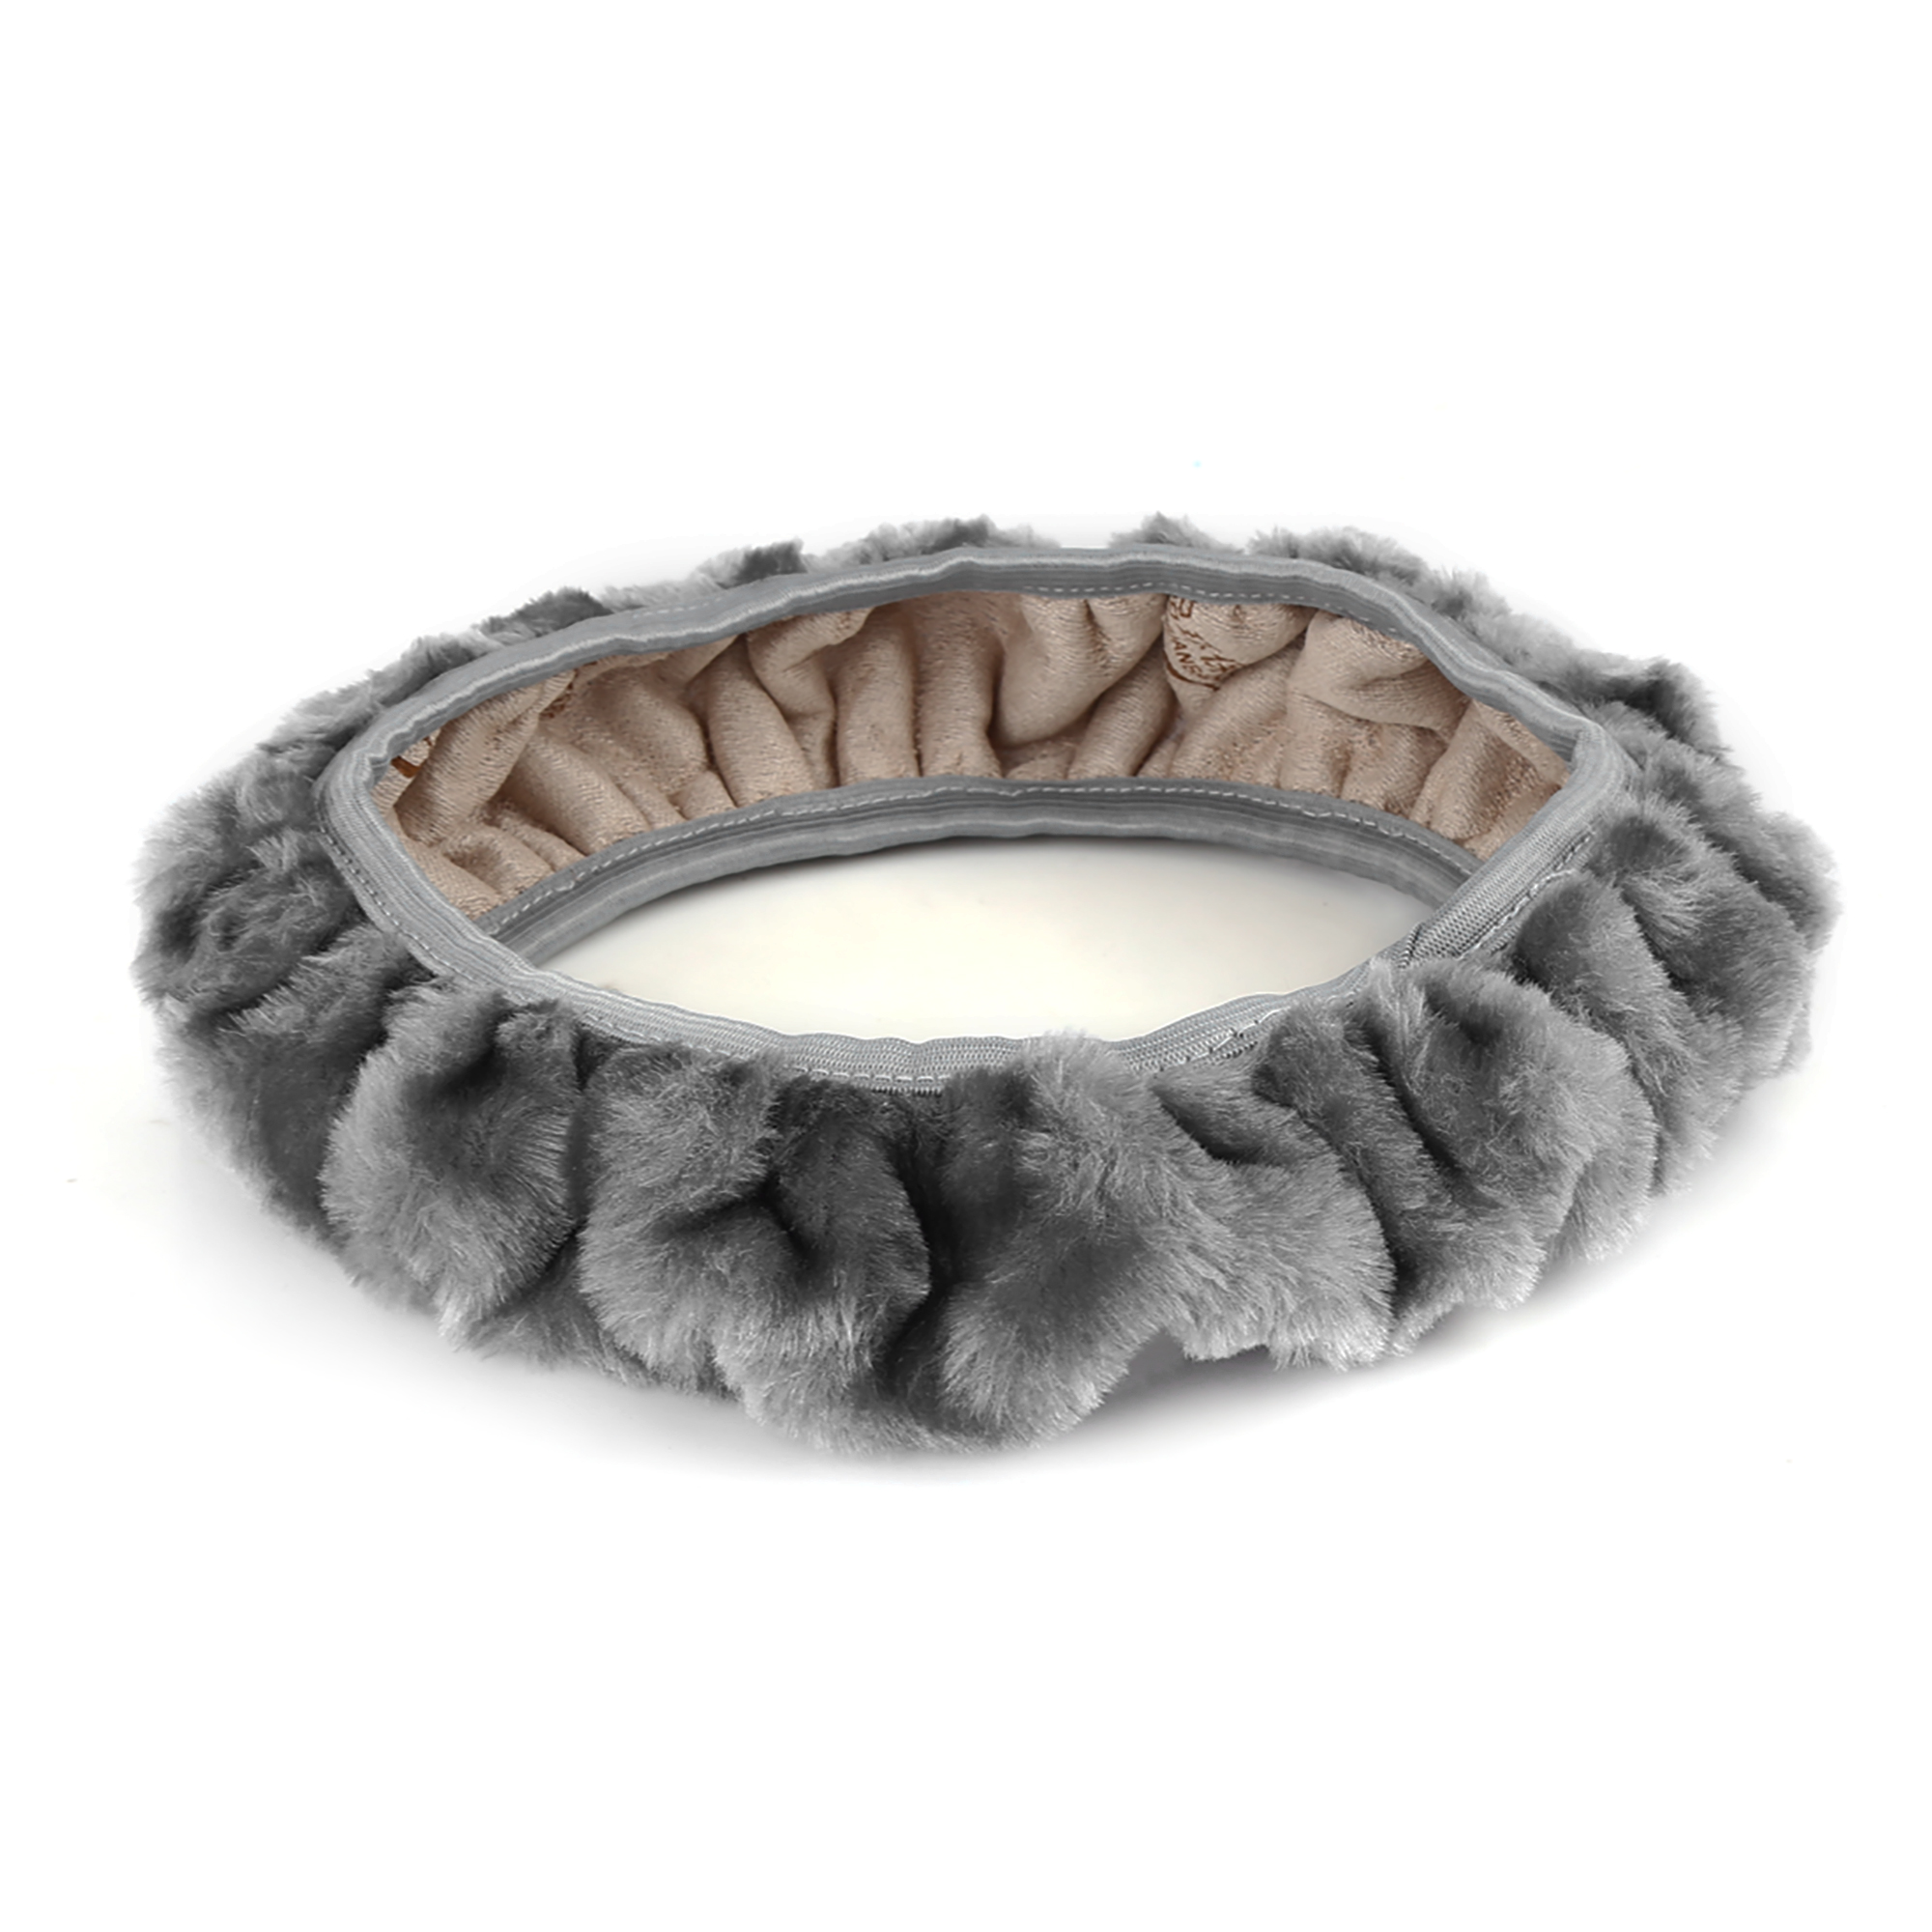 Gray Soft Plush Fuzzy Auto Car Truck Steering Wheel Cover Warm for Winter